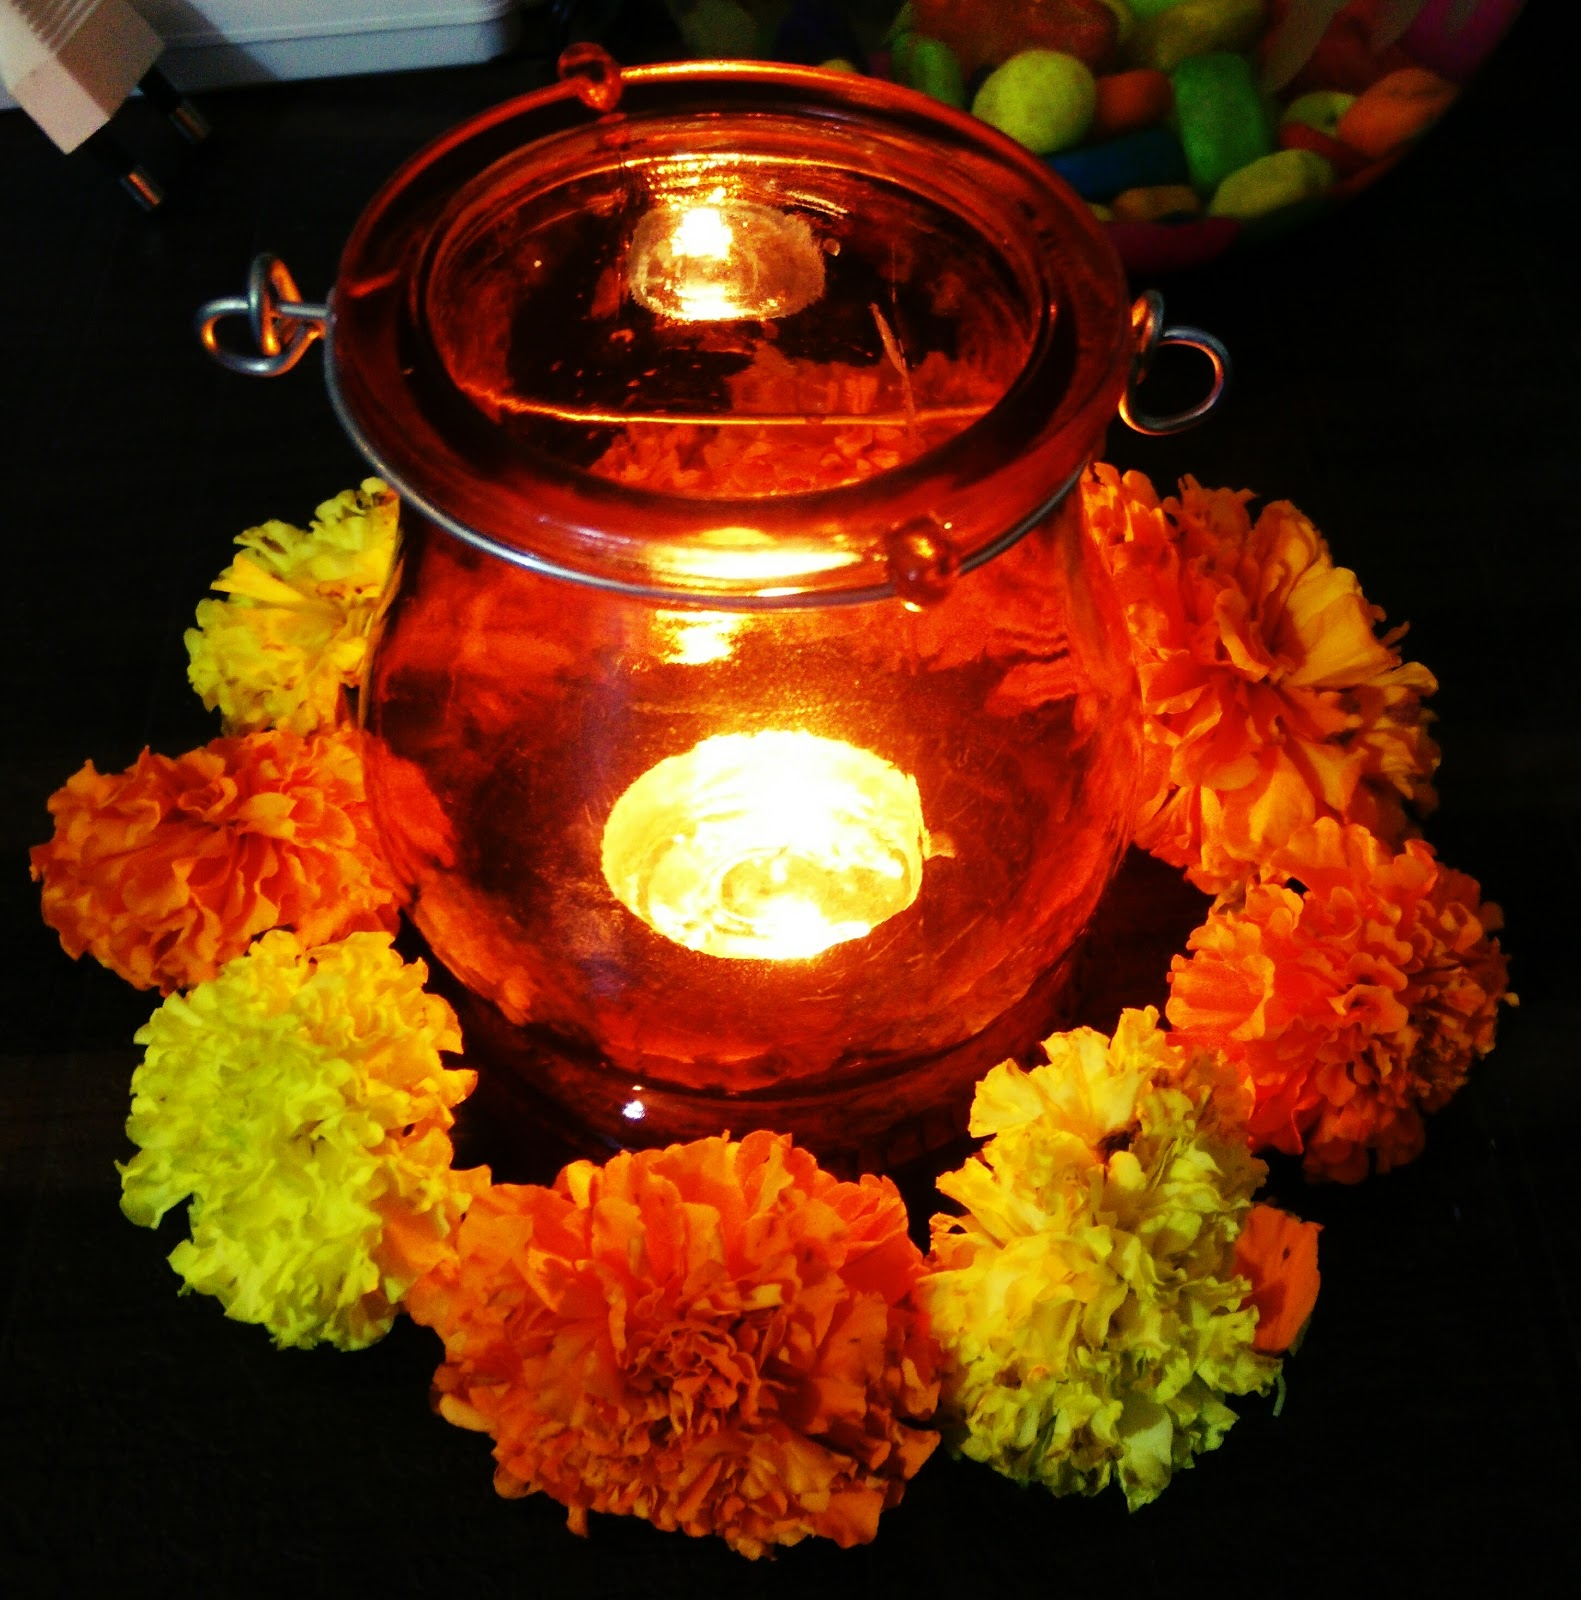 Diwali Decoration Home: EASY DIWALI DECORATION IDEAS FOR YOUR HOME